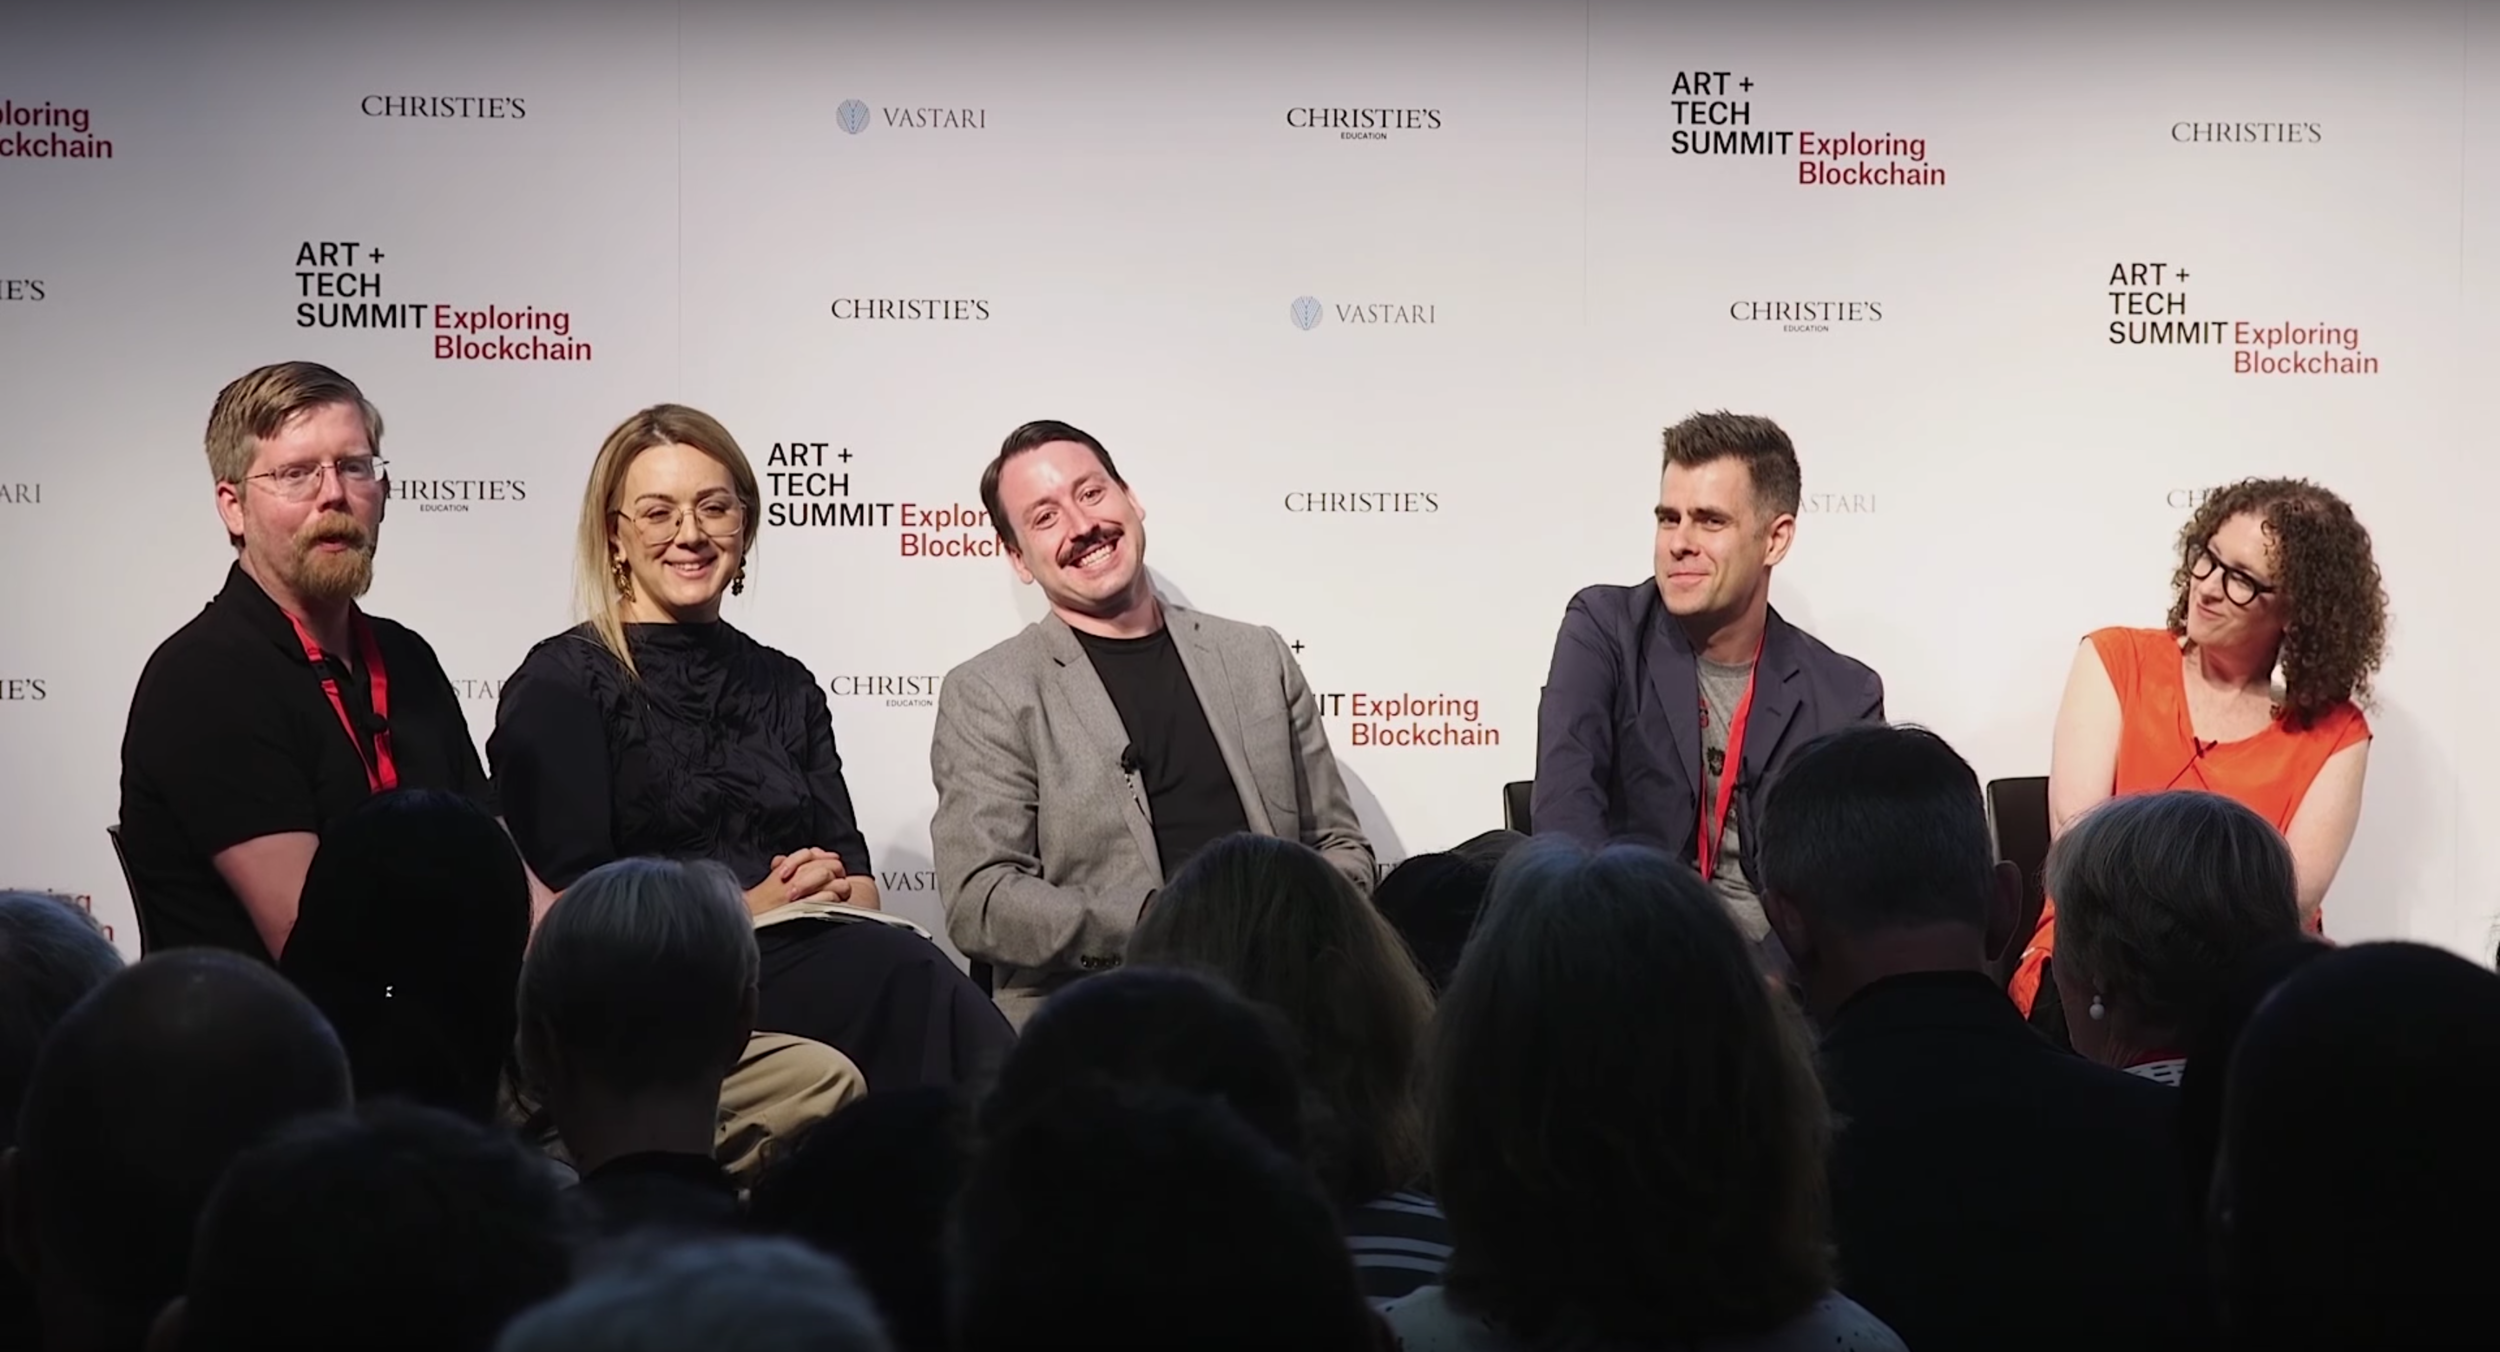 Panel on blockchain and digital art at Christie's  Art + Tech Summit  in London. From left to right: Jason Bailey, Artnome - Masha McConaghy, Ascribe - John Zettler, R.A.R.E. Digital Art Network - Matt Hall, CryptoPunks - Judy Mam, Dada.nyc